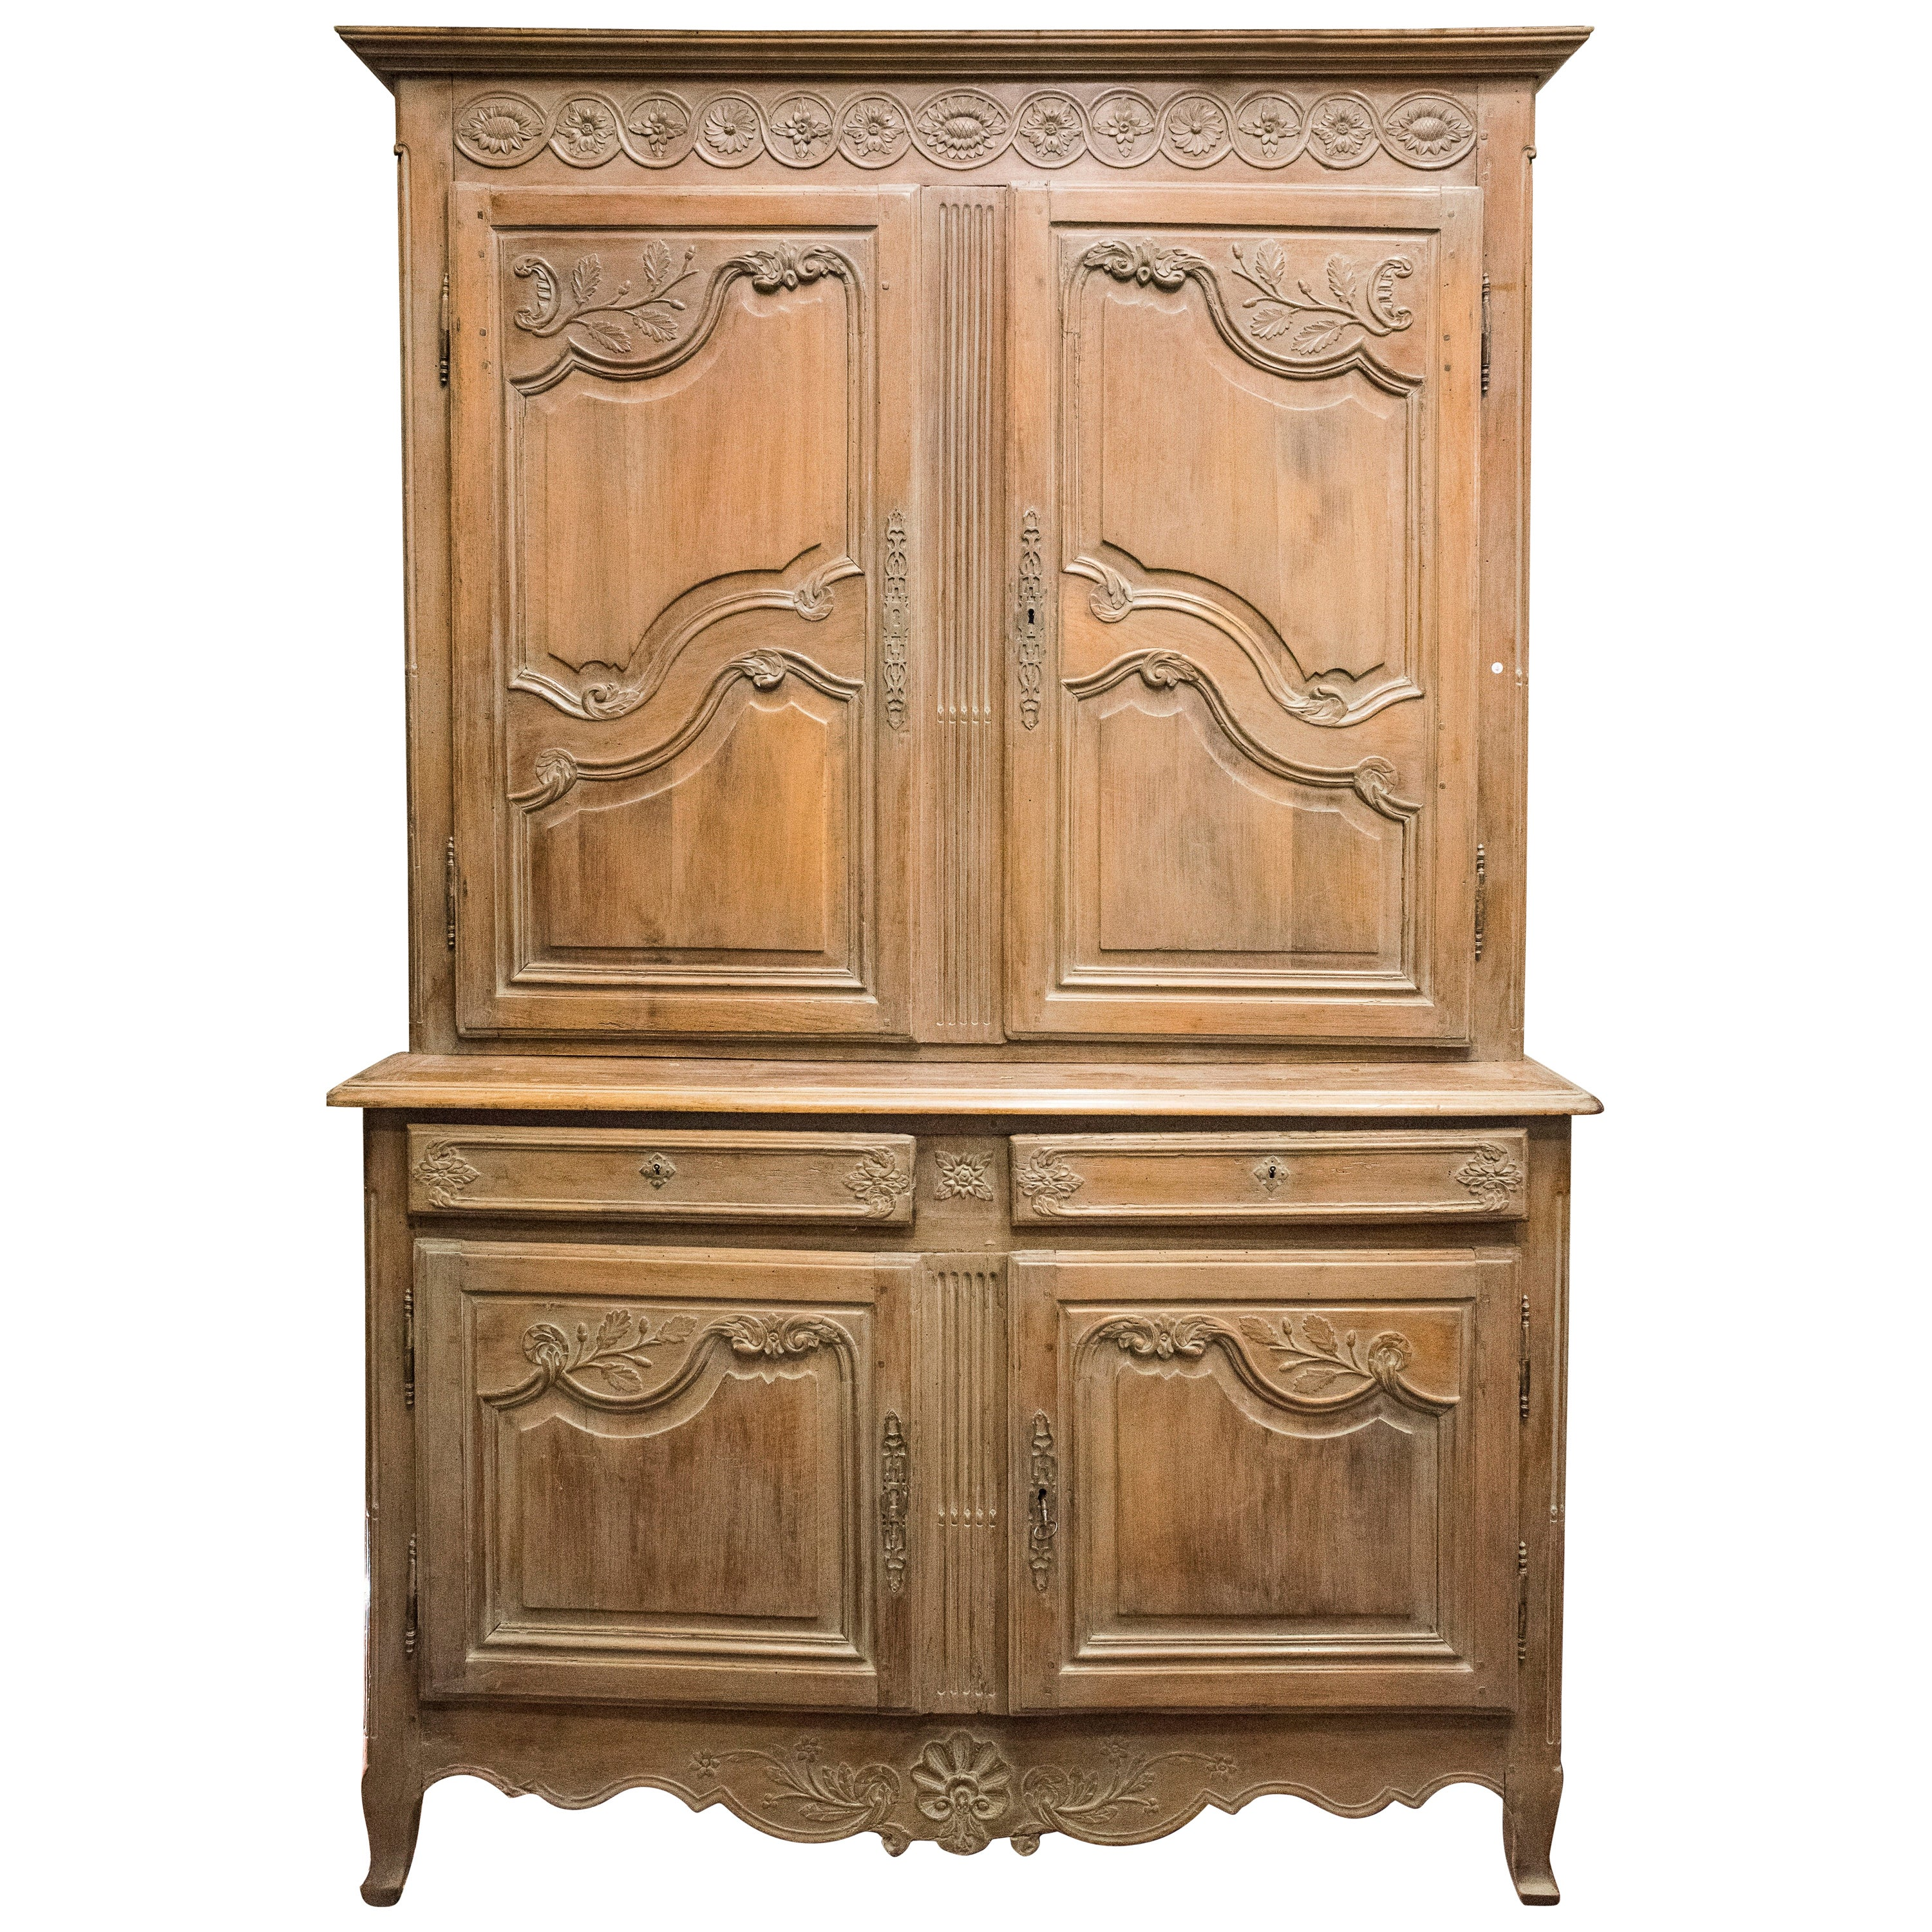 19th French Buffet Carved and Stucco Fruit Wood French Provenzal buffet